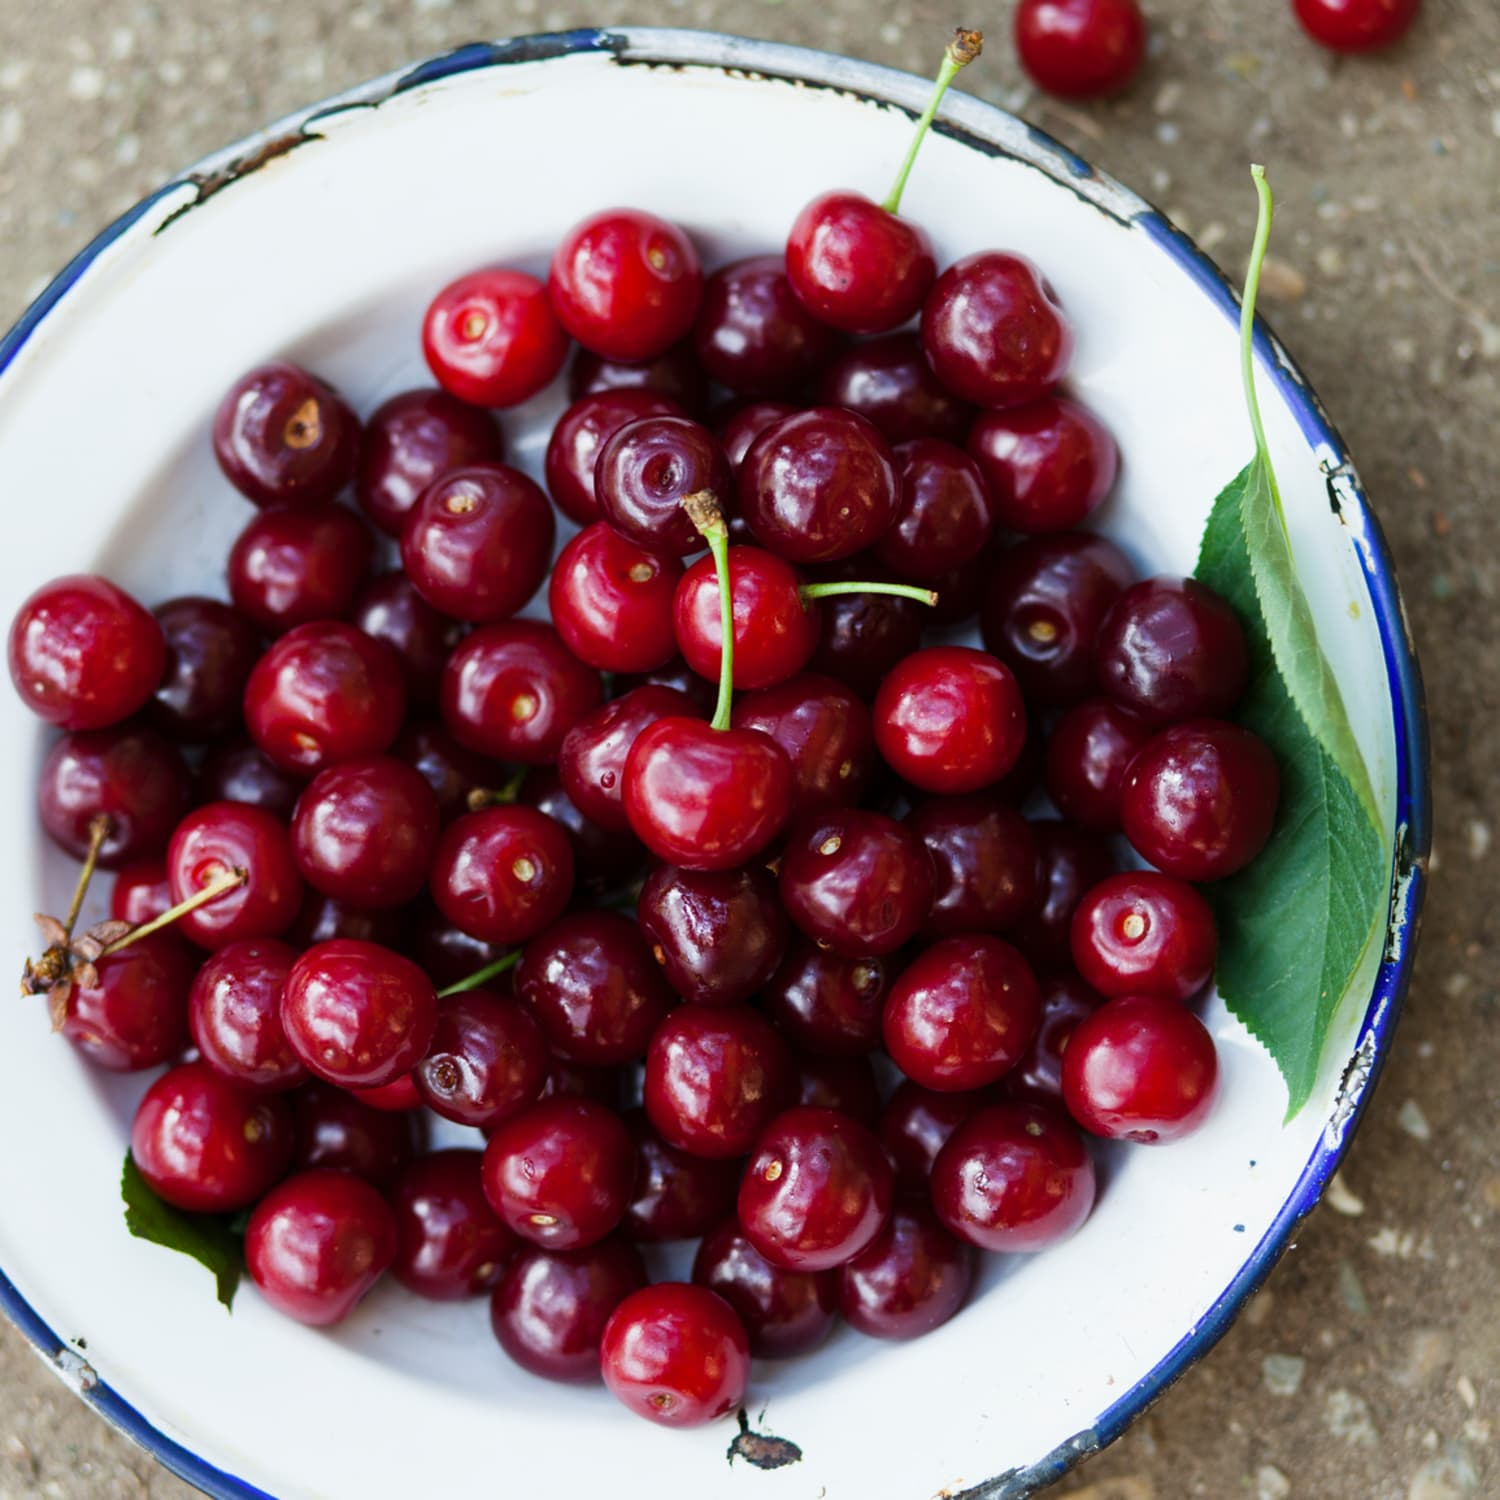 What Are Tart or Sour Cherries? | Kitchn